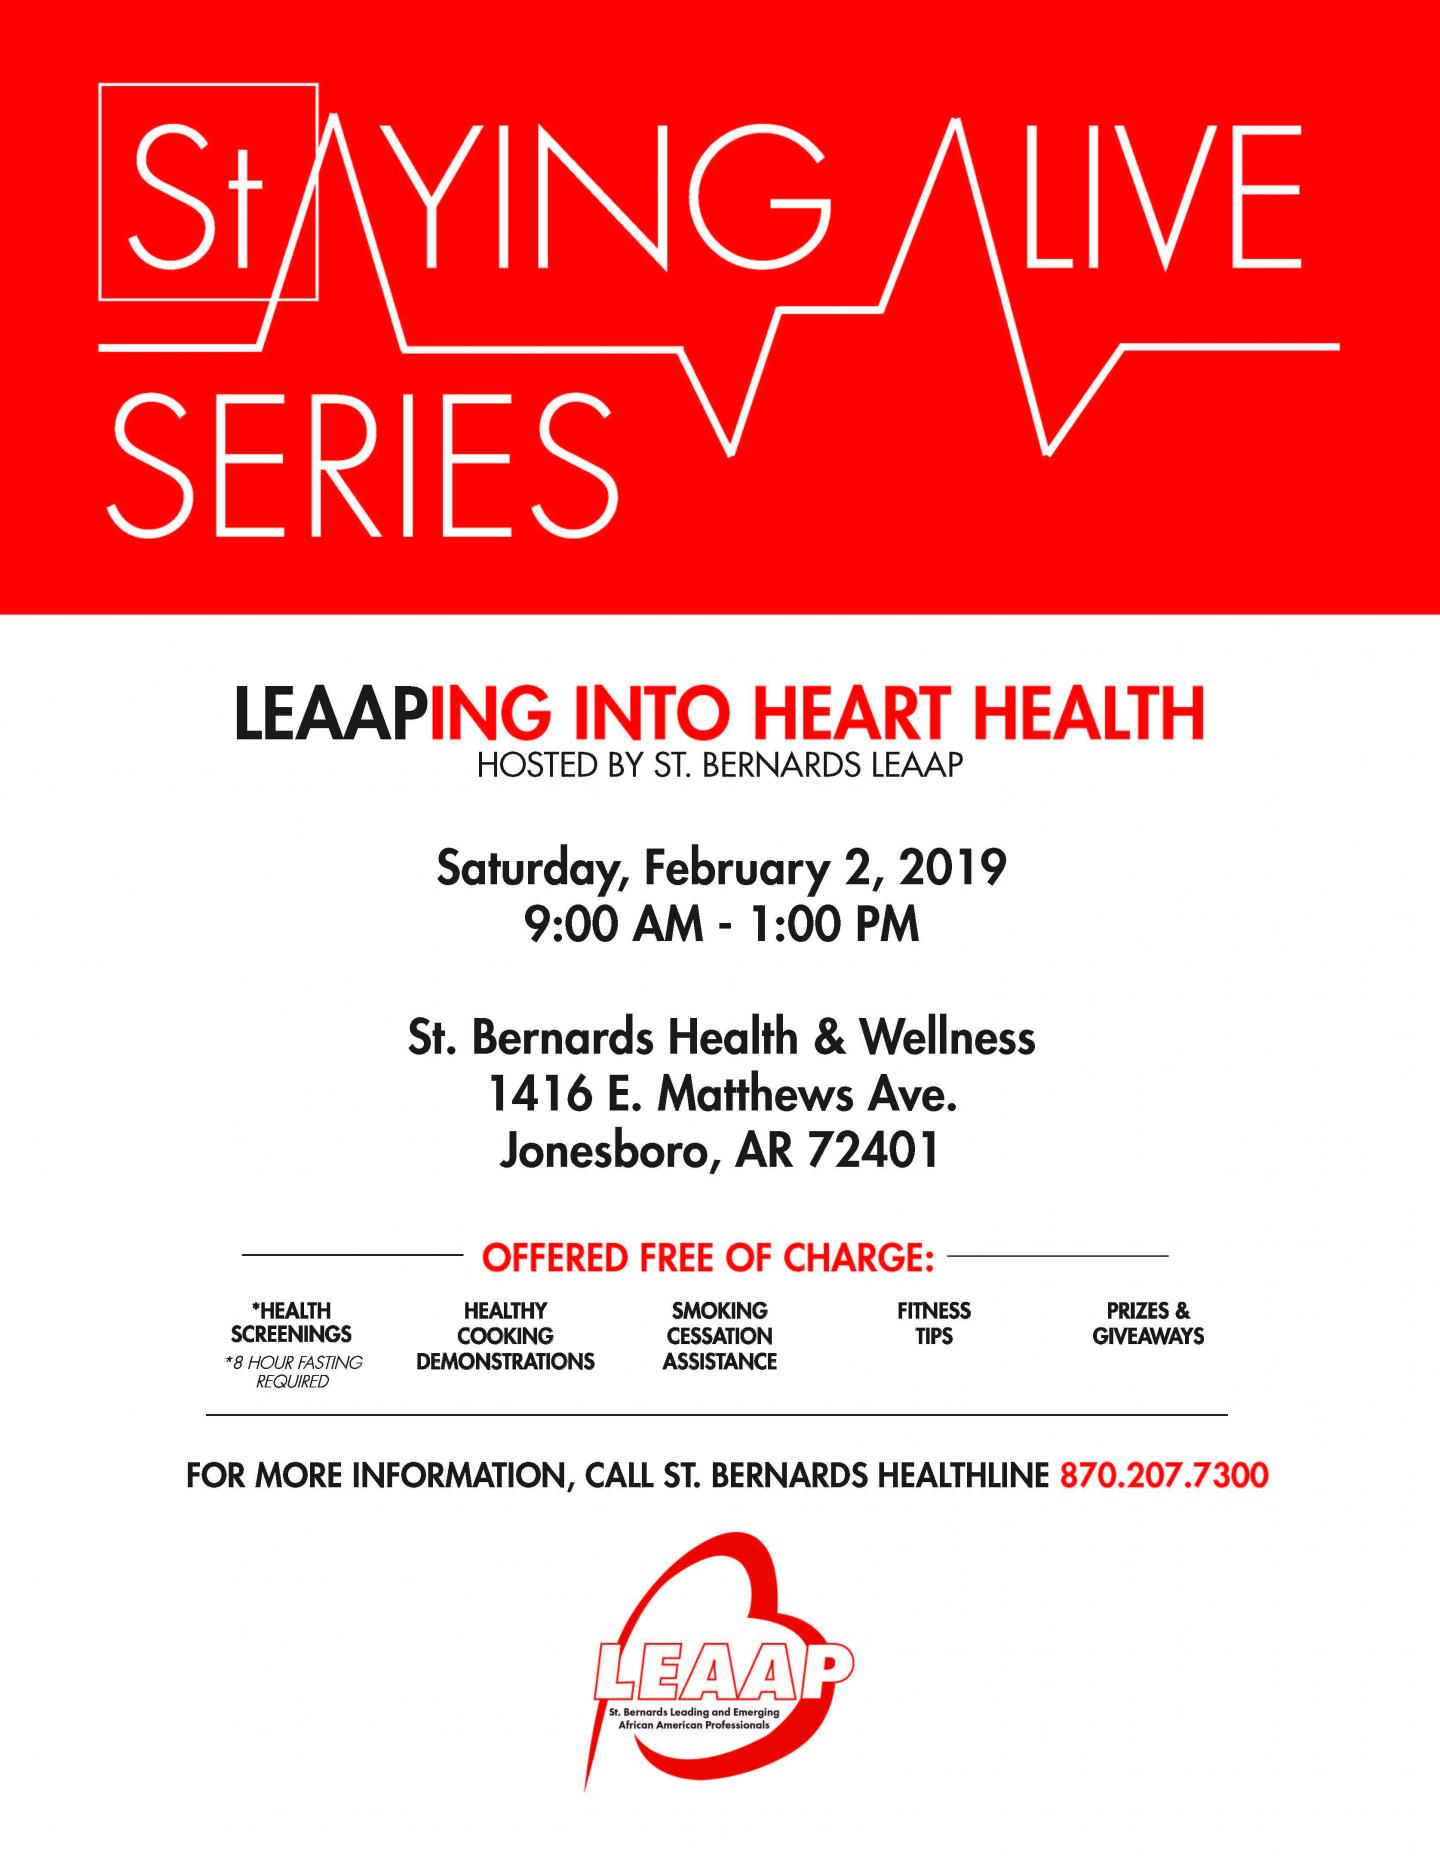 Heart Health event